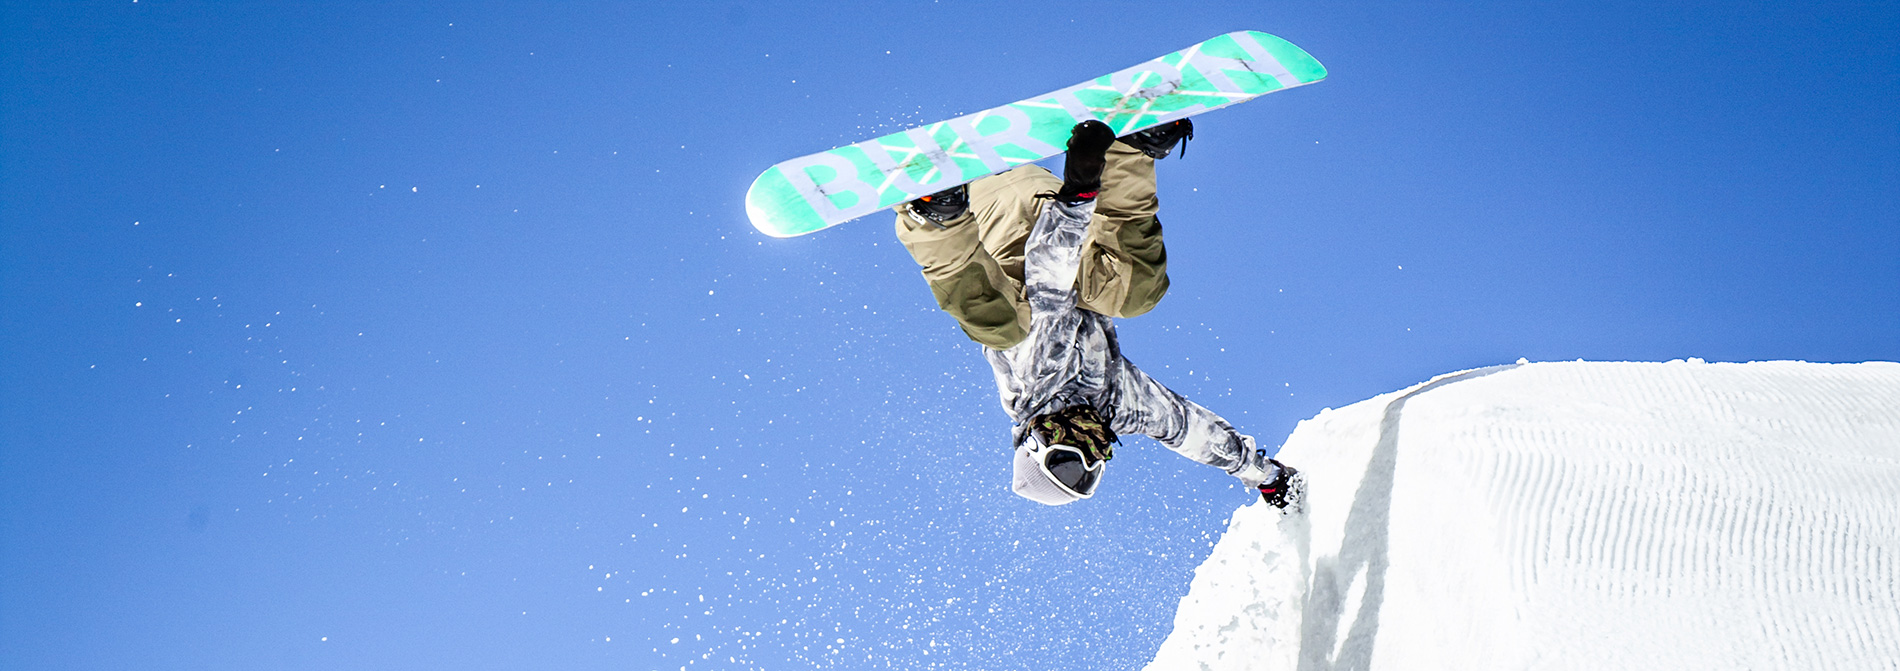 snowboarder doing a trick